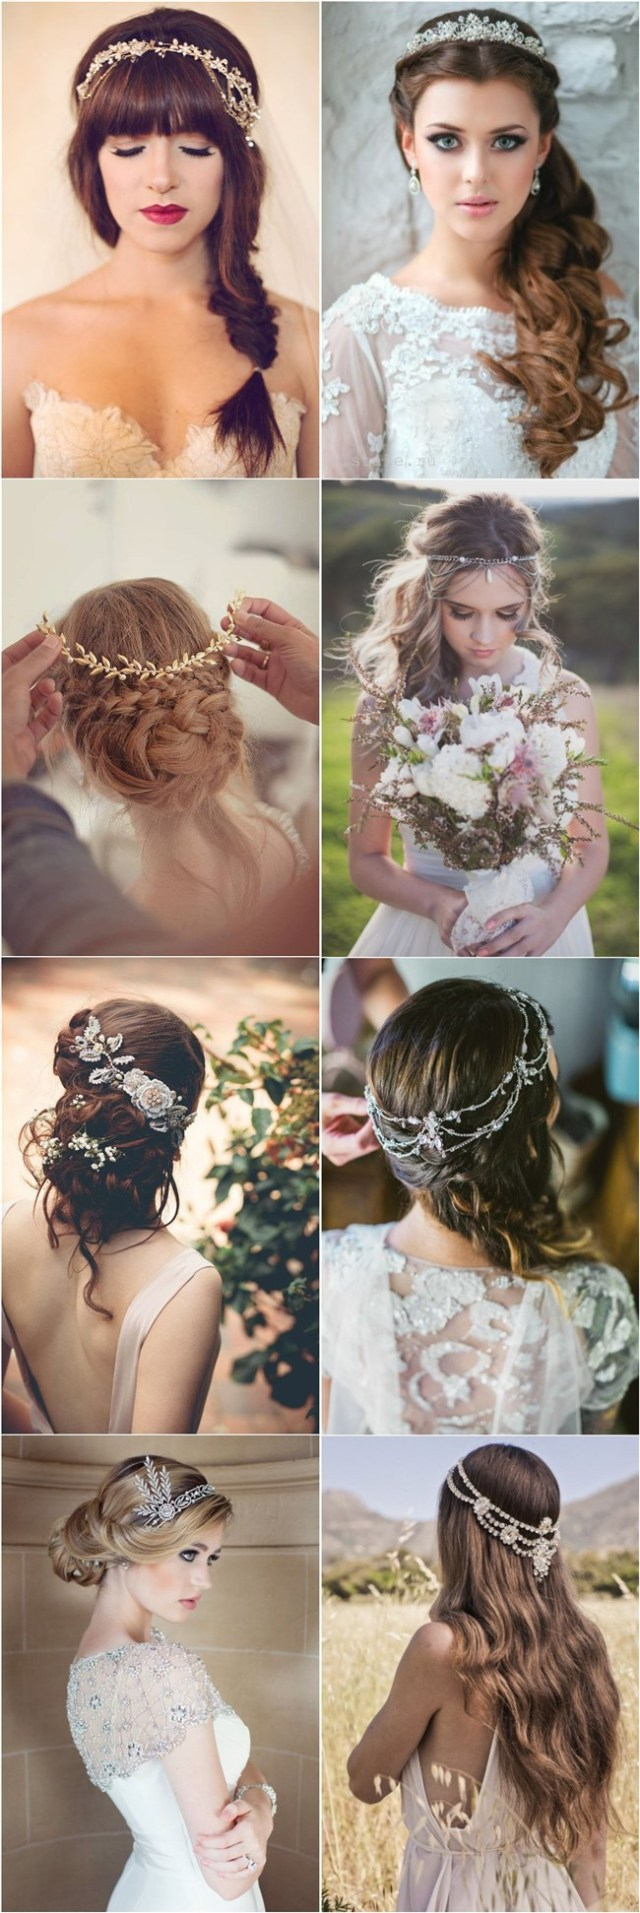 30 amazing wedding hairstyles with headpiece | deer pearl